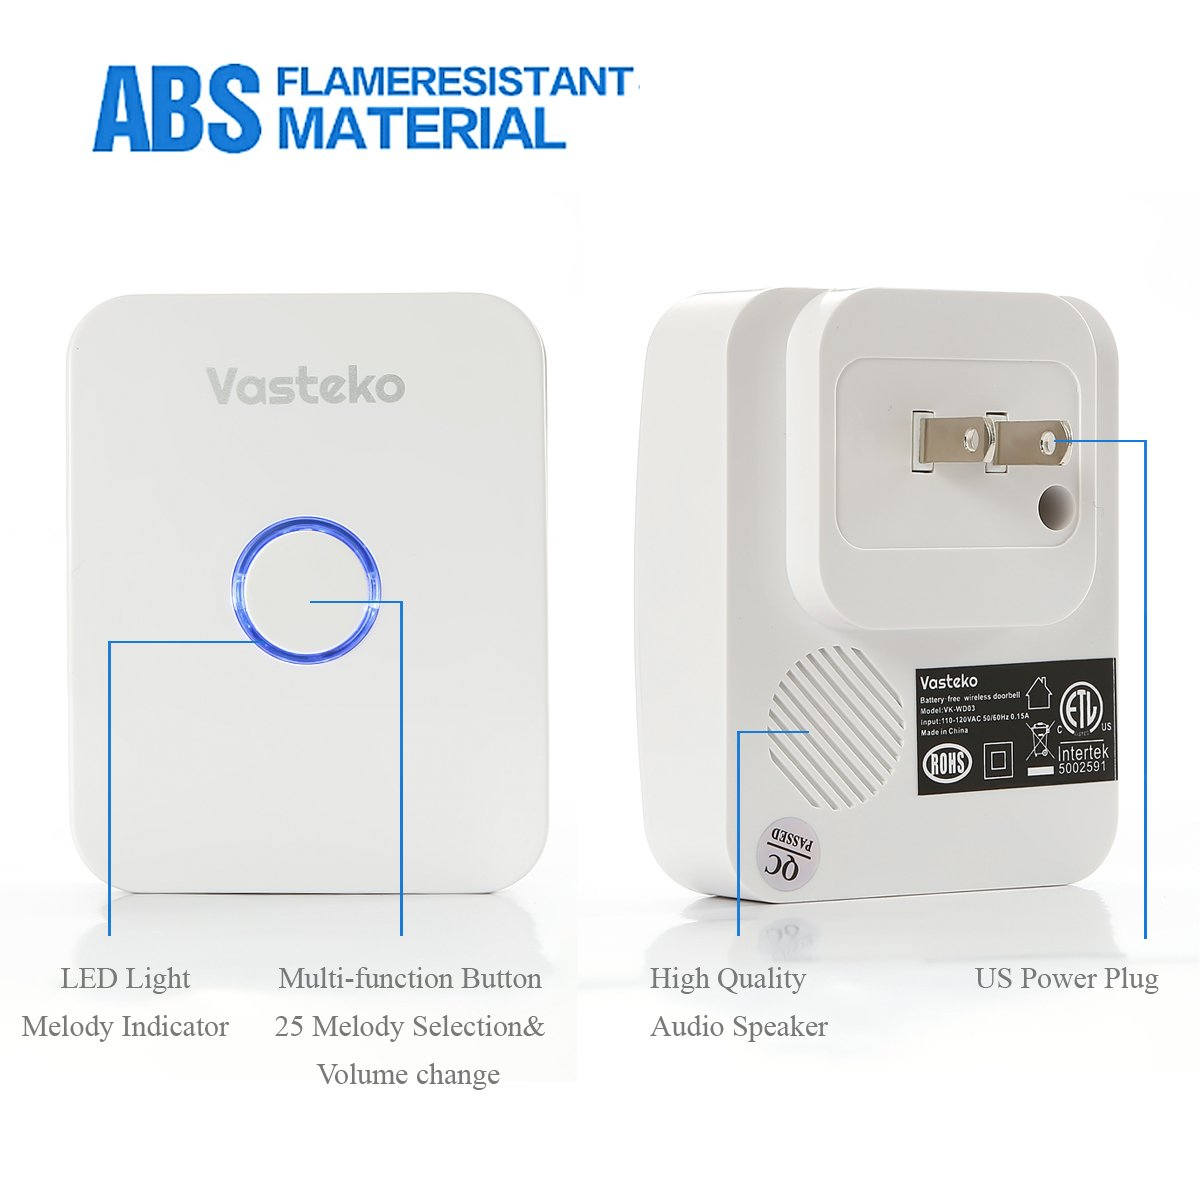 Vasteko Wireless Doorbell Kits No Battery Required For Both Receiver Wiring Diagram Meyer Transmitter And Ipx7 Waterproof Push Button 3 Level Volume 25 Ring Tunes White